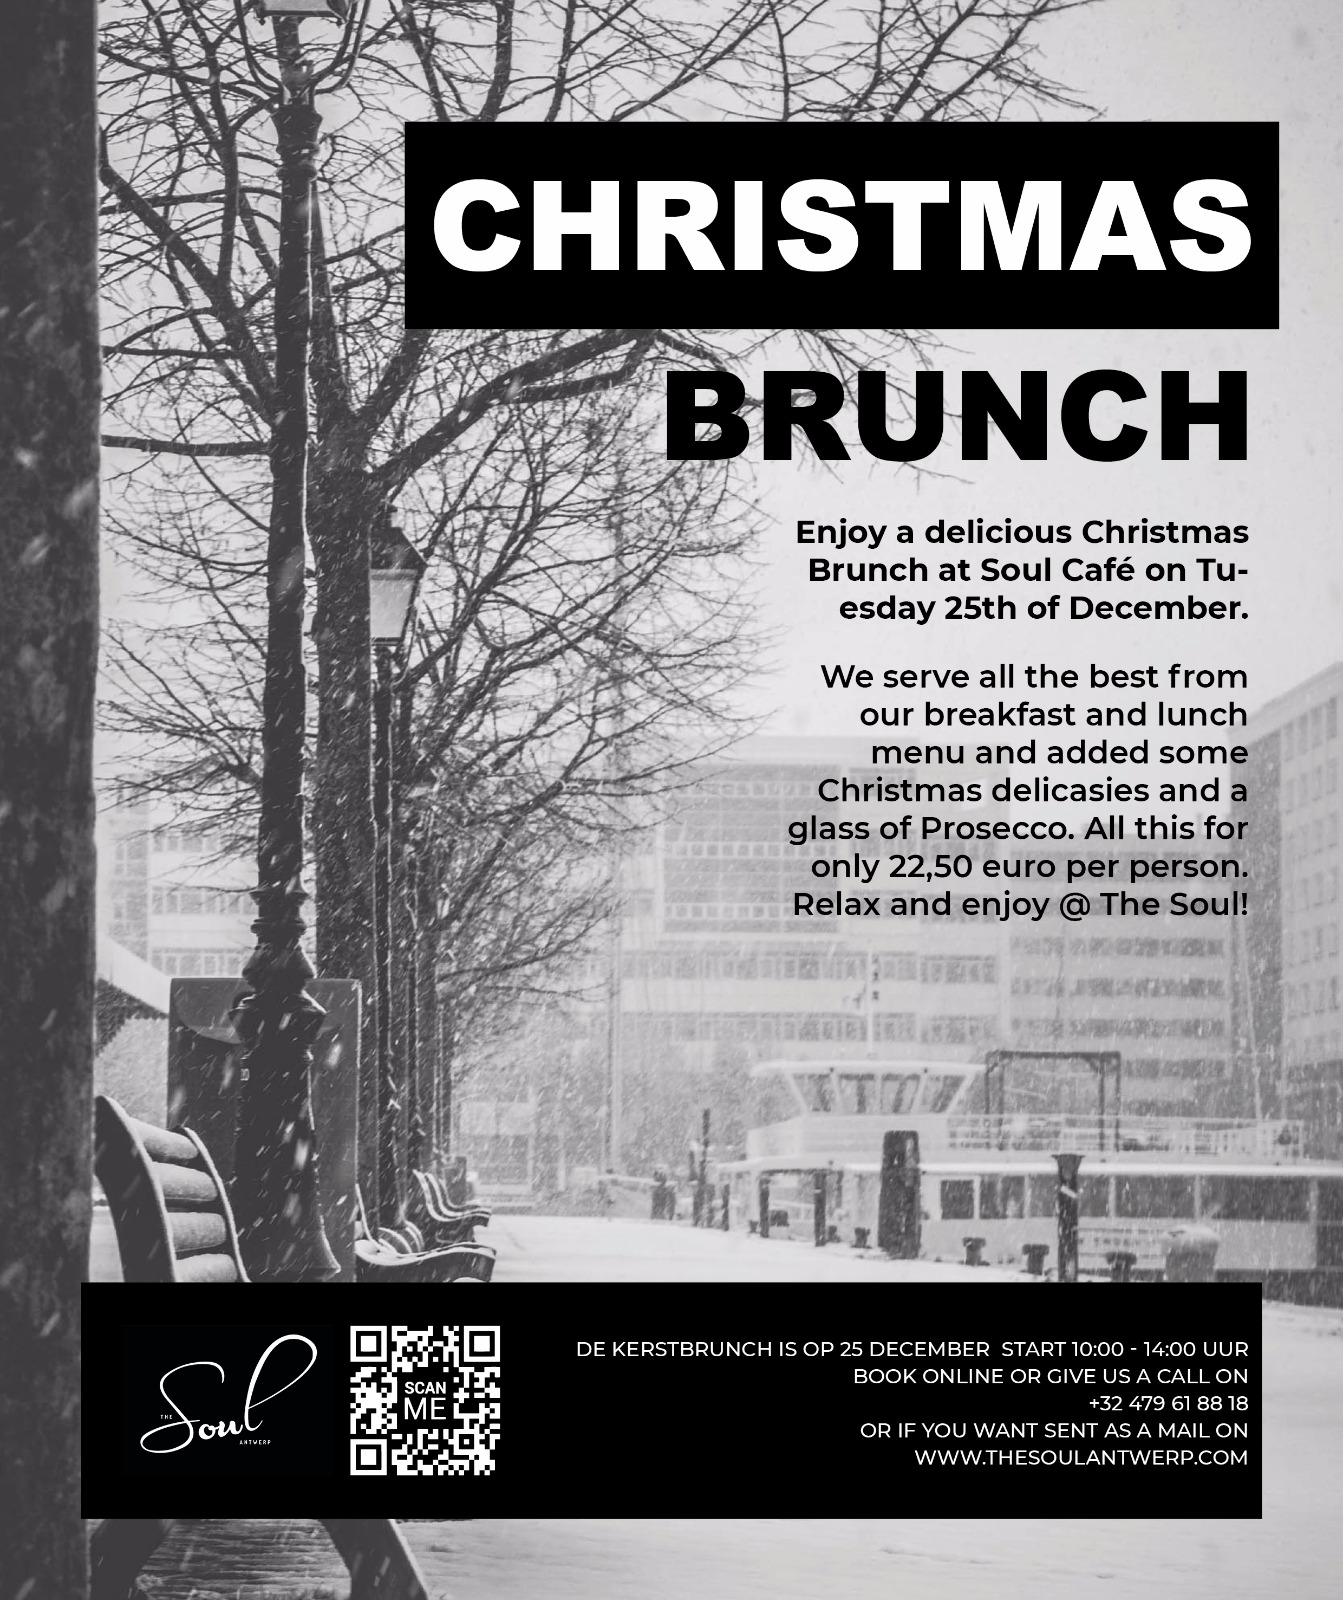 CHRISTMAS BRUNCH SOUL CAFE